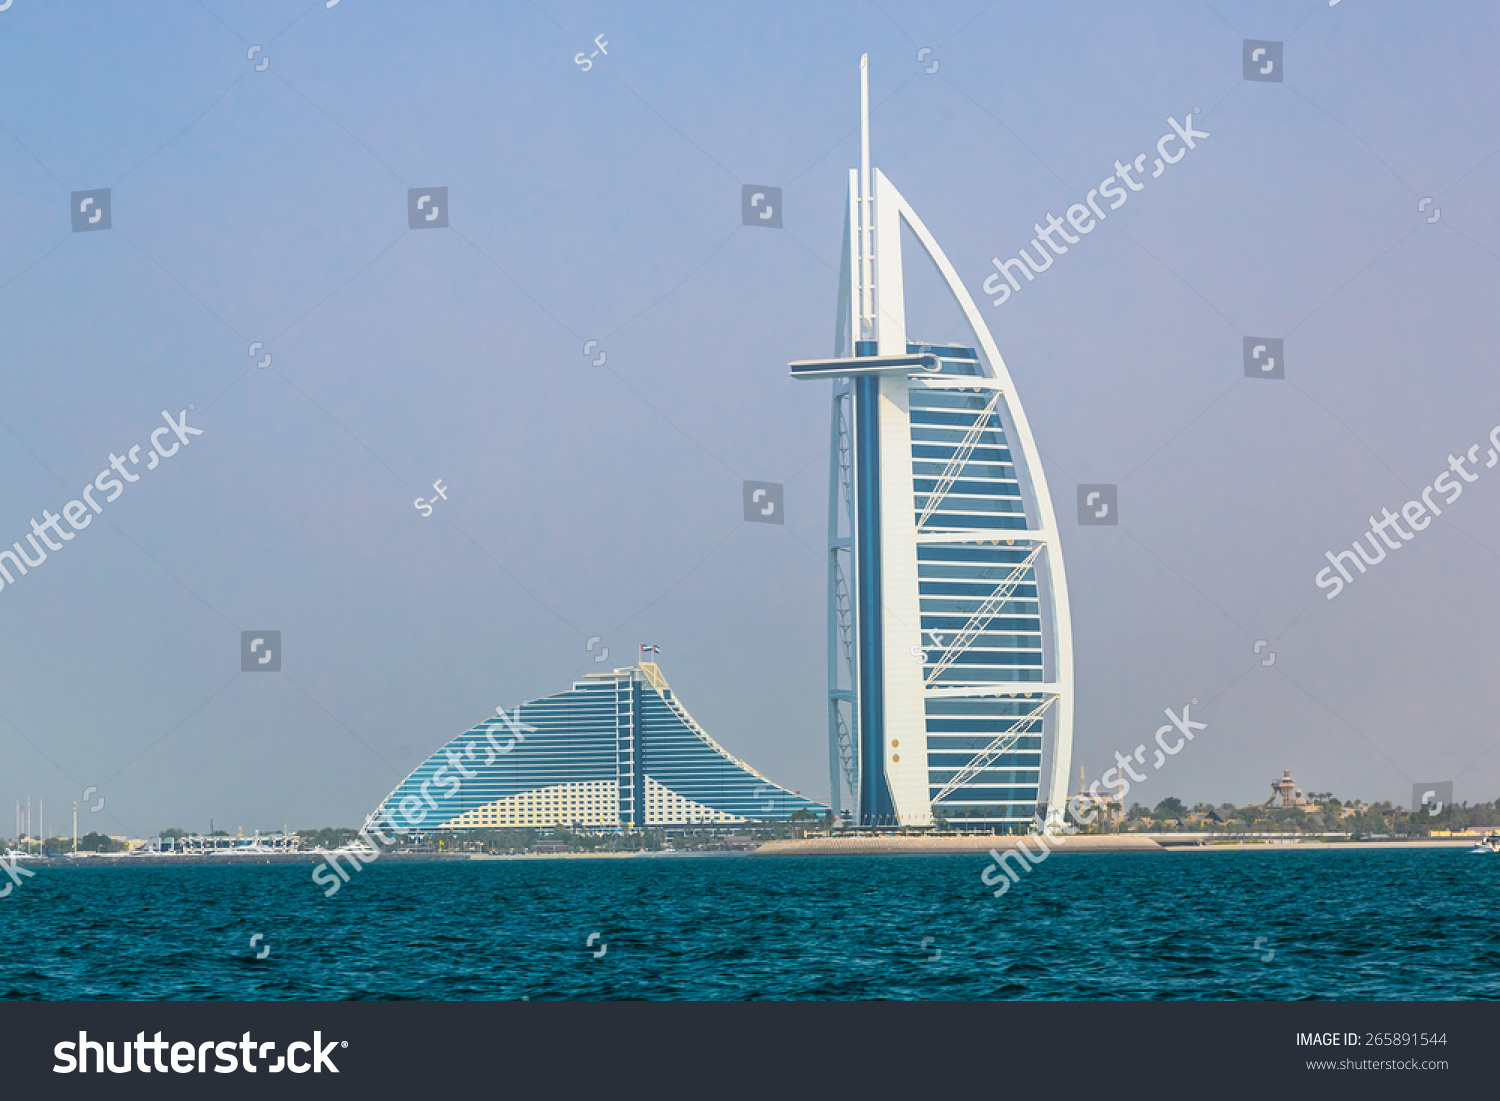 Dubai uae november 14 the world 39 s first seven stars for Dubai 7 star hotel name